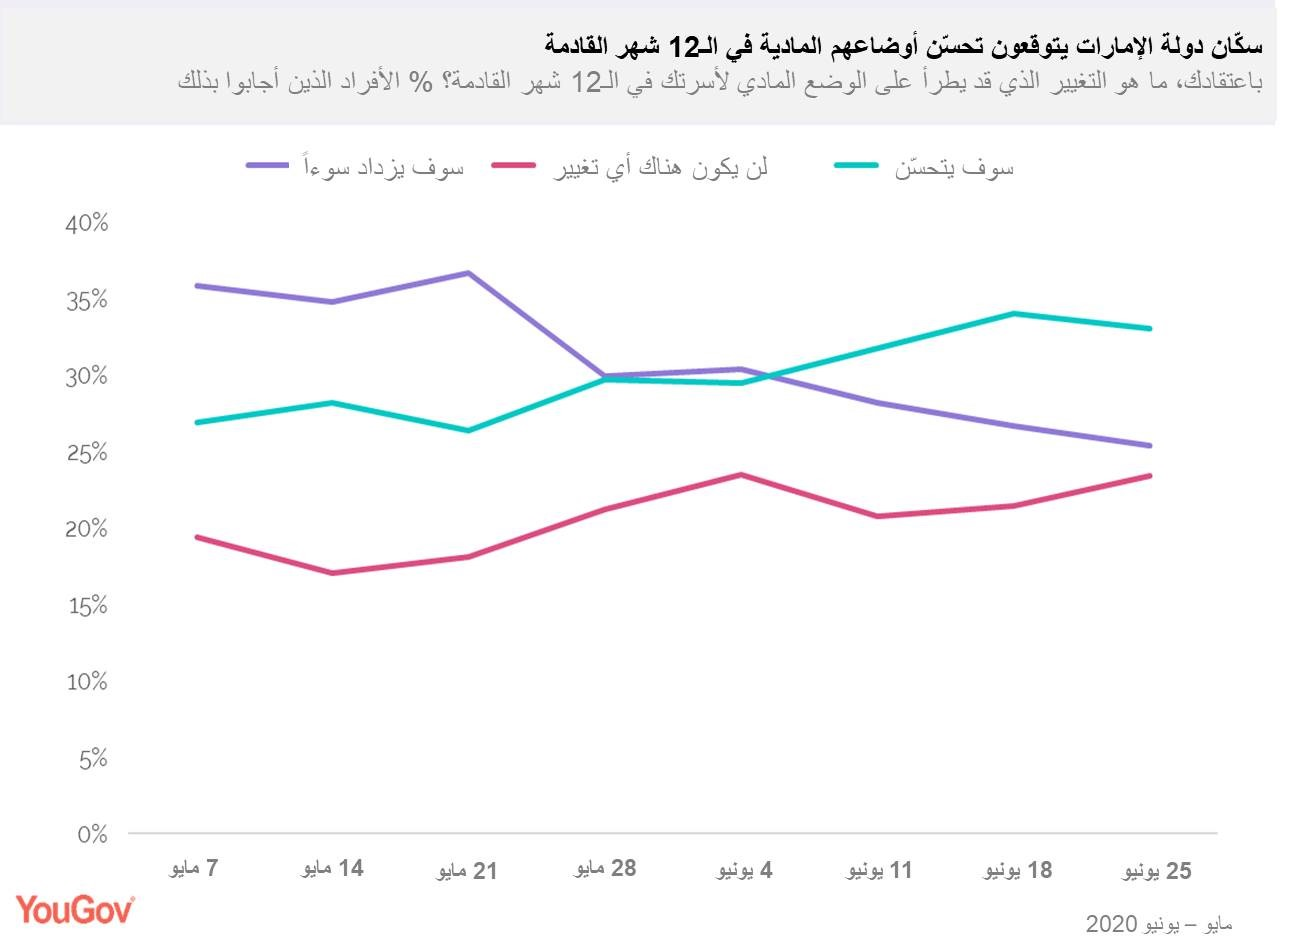 residents-expect-personal-finances-to-improve-arabic